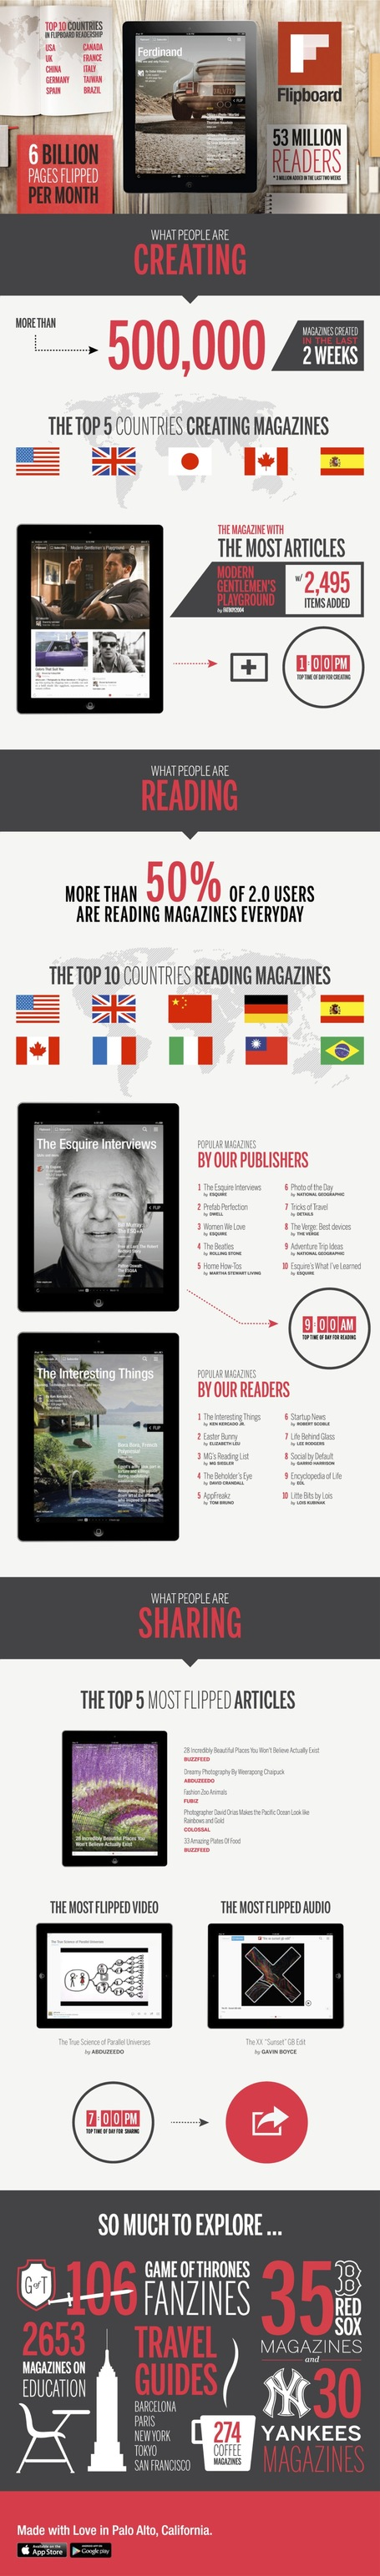 The State of Flipboard and Rise of Mobile Curation [INFOGRAPHIC] | Mobile Revolution | Scoop.it